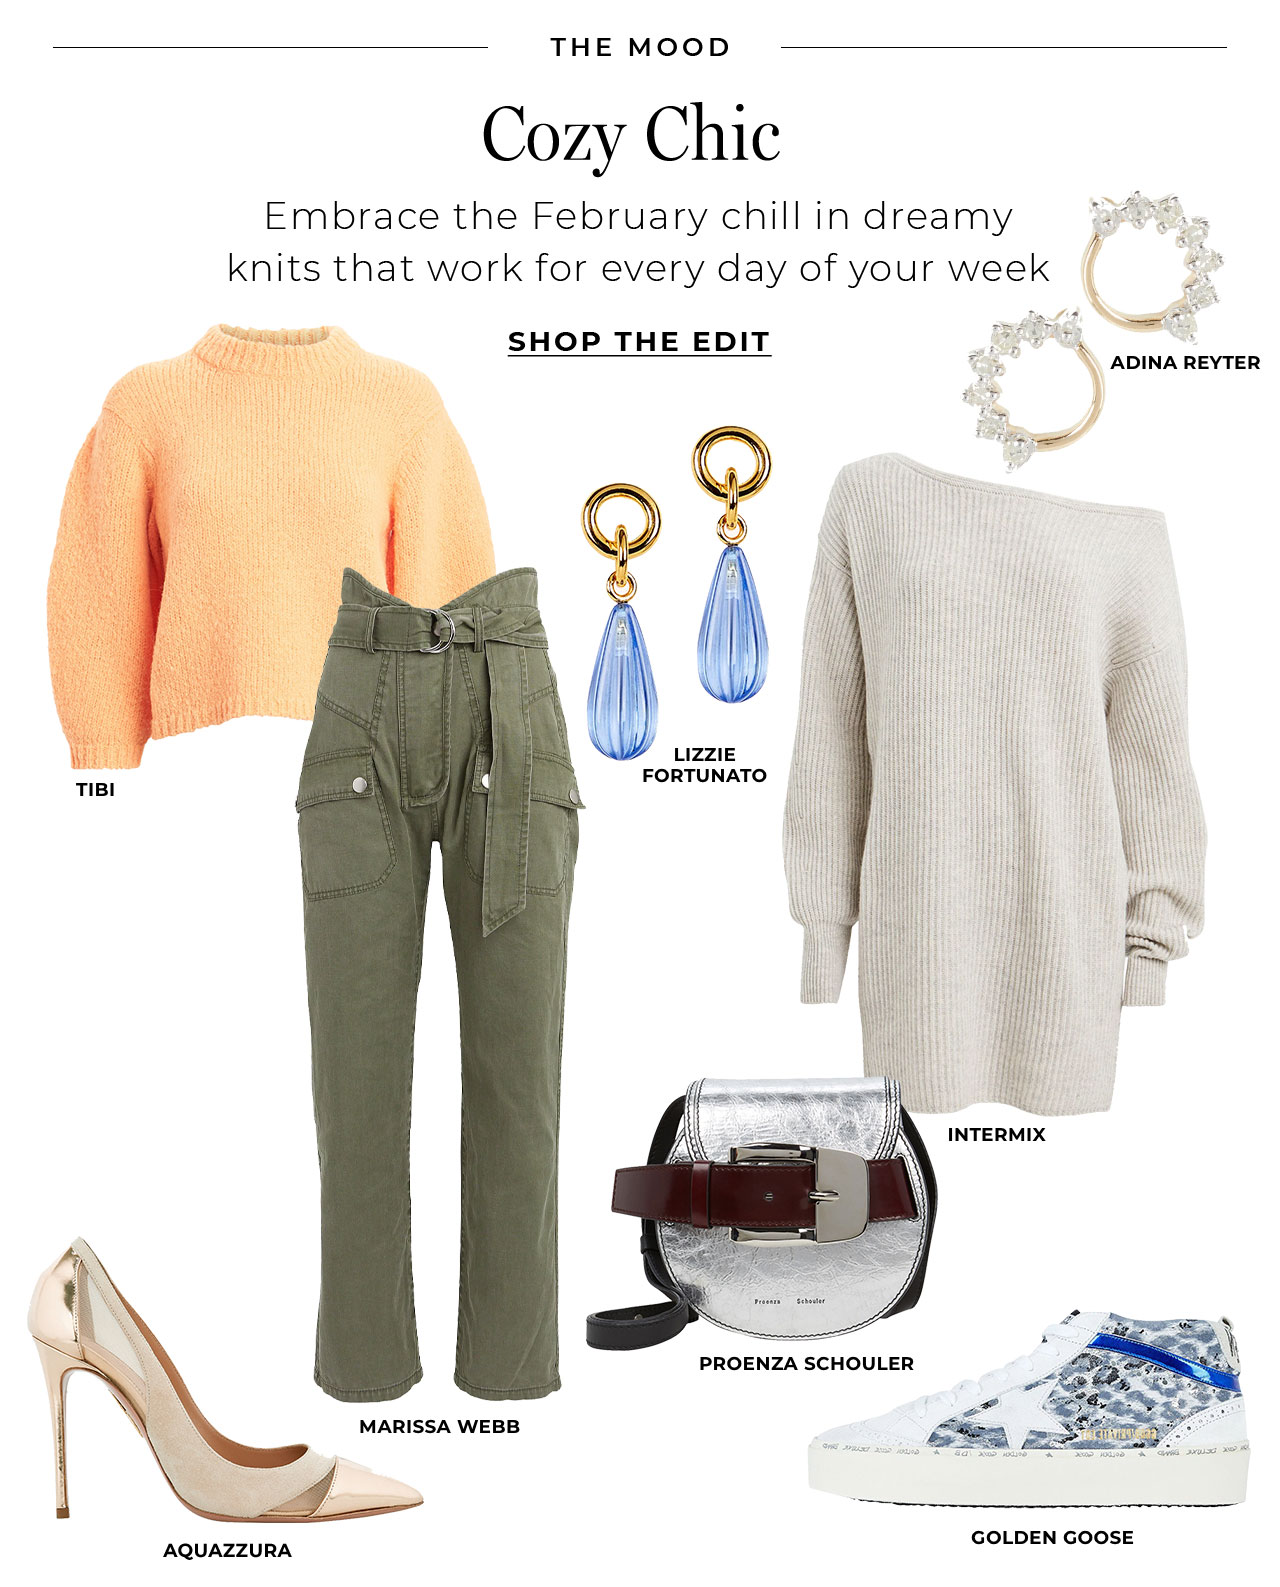 Embrace the February chill in dreamy knits that work for every day of the week